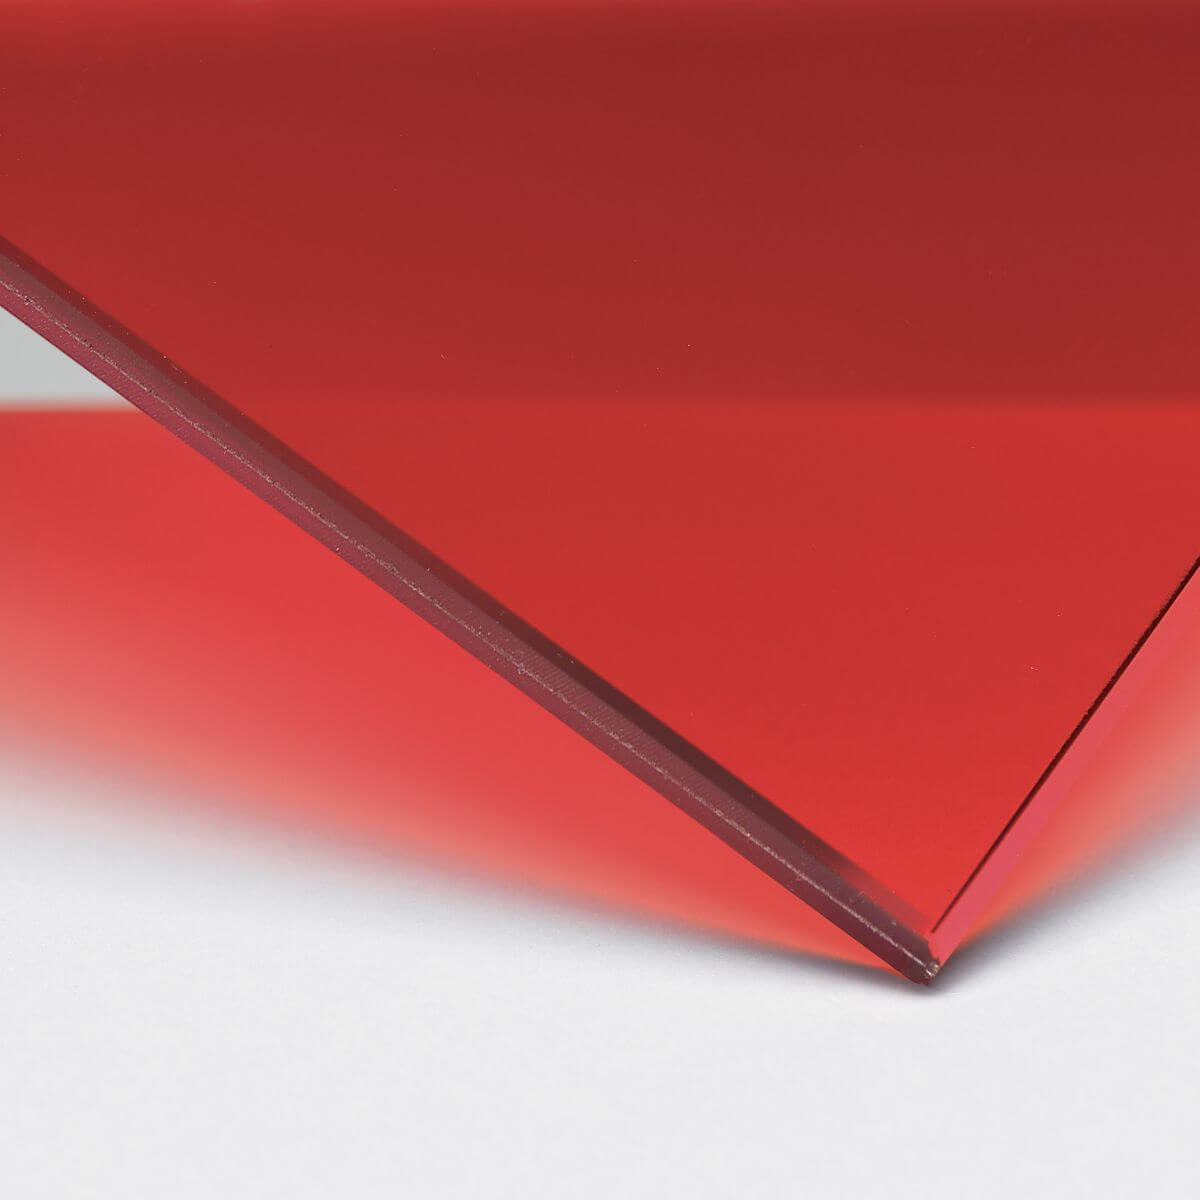 Finish: Glass with transparent red inner film